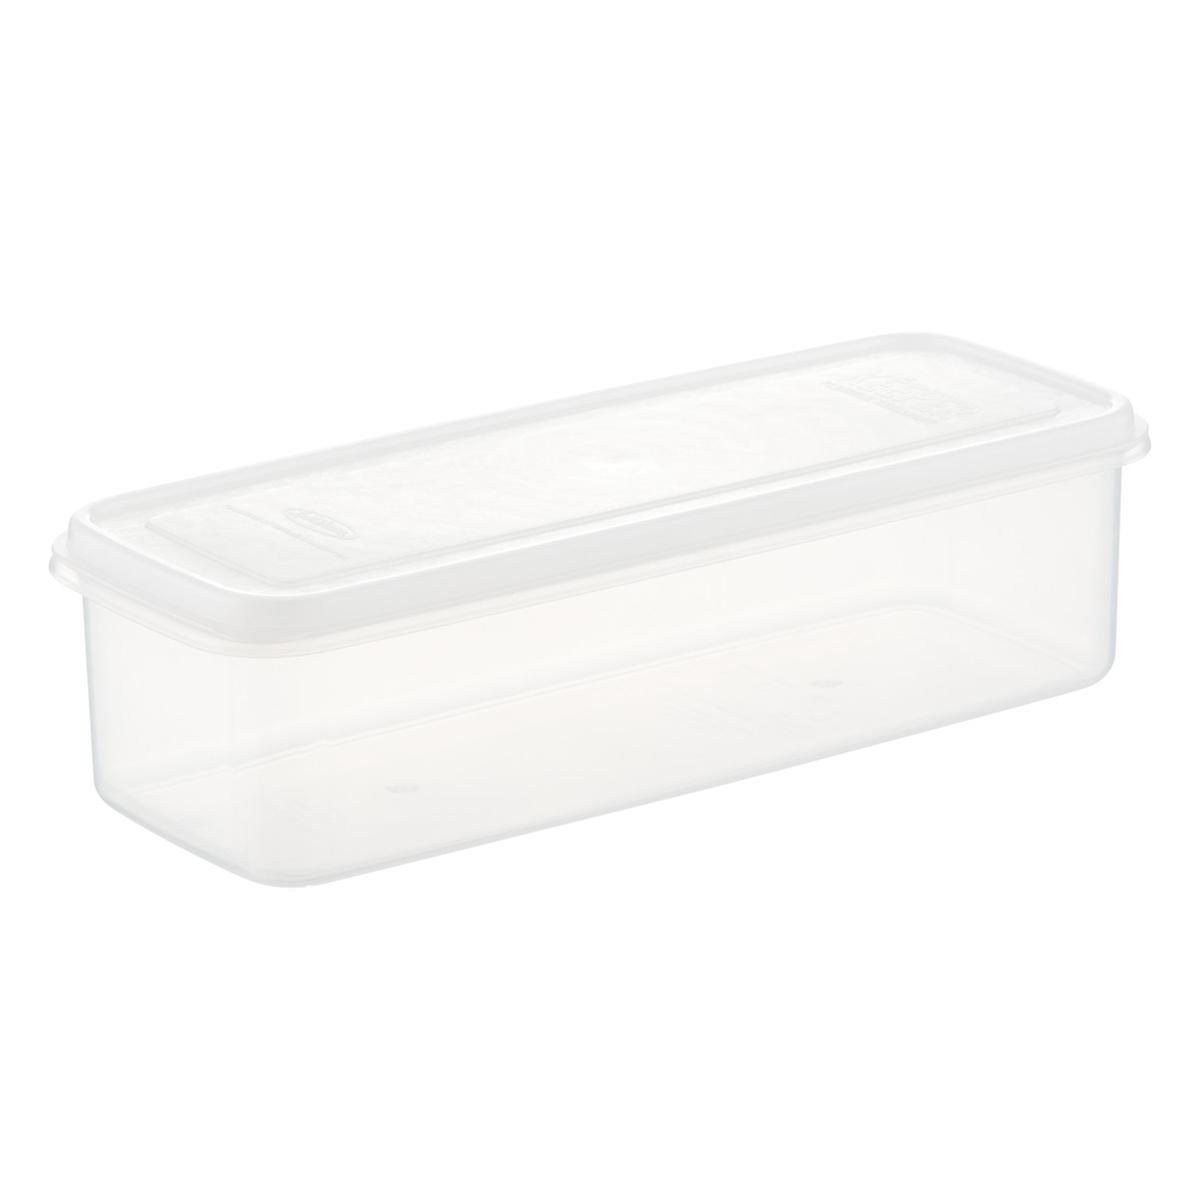 Large Food Keepers The Container Store